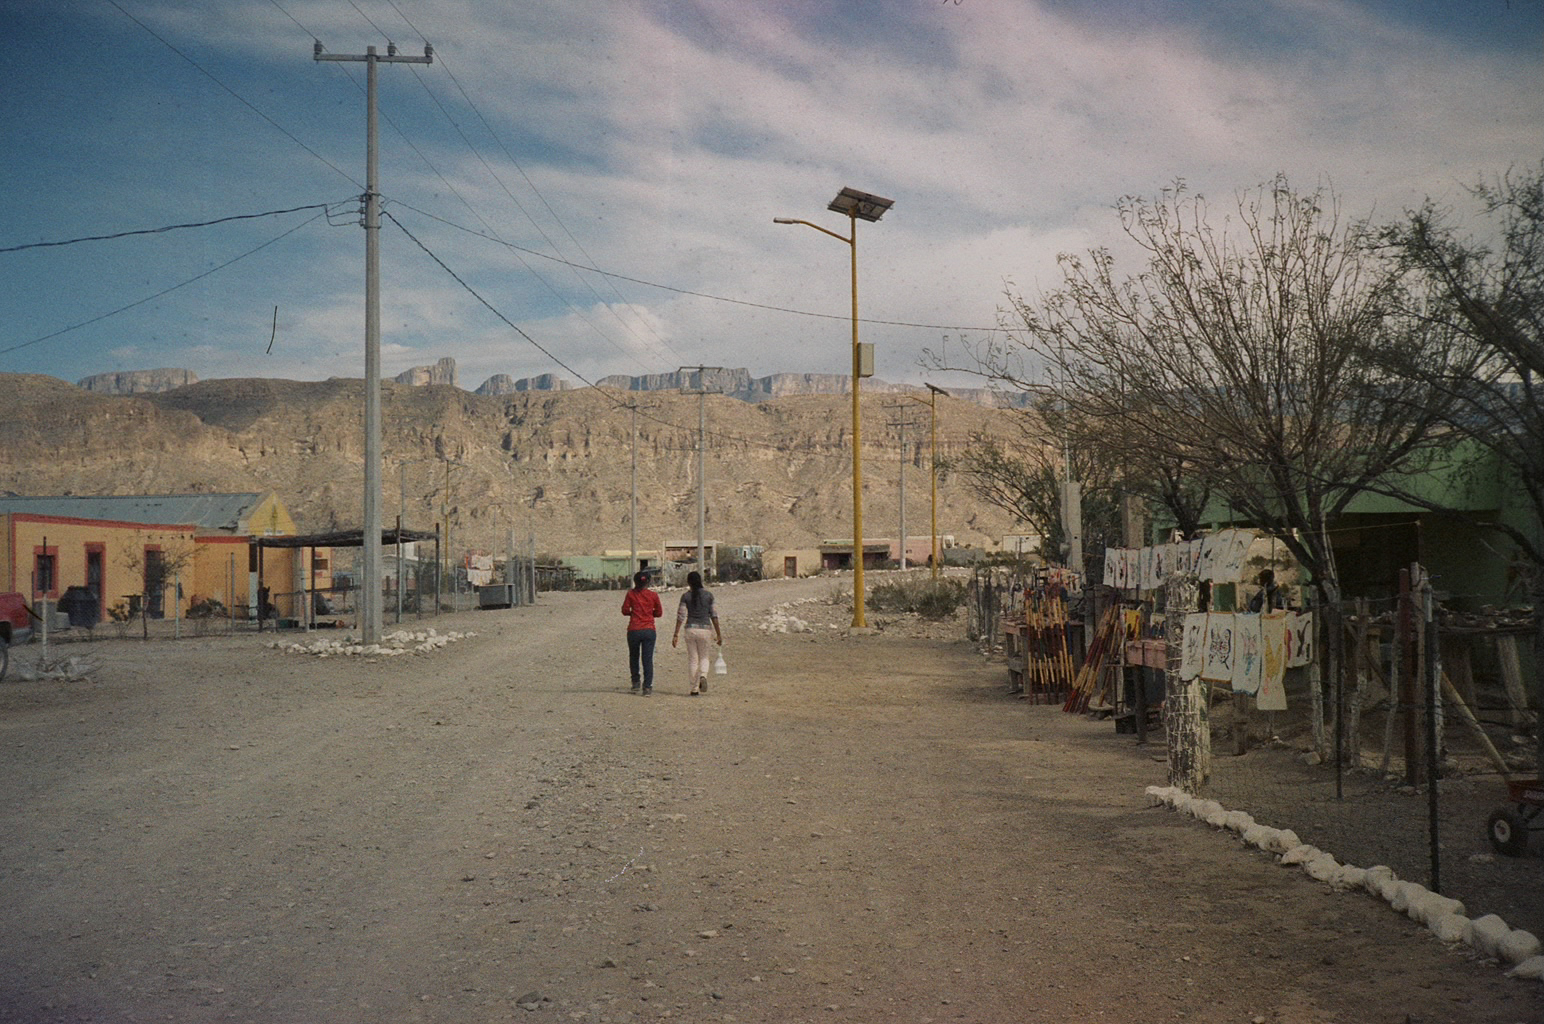 Hanging out in Boquillas, Mexico, 2017